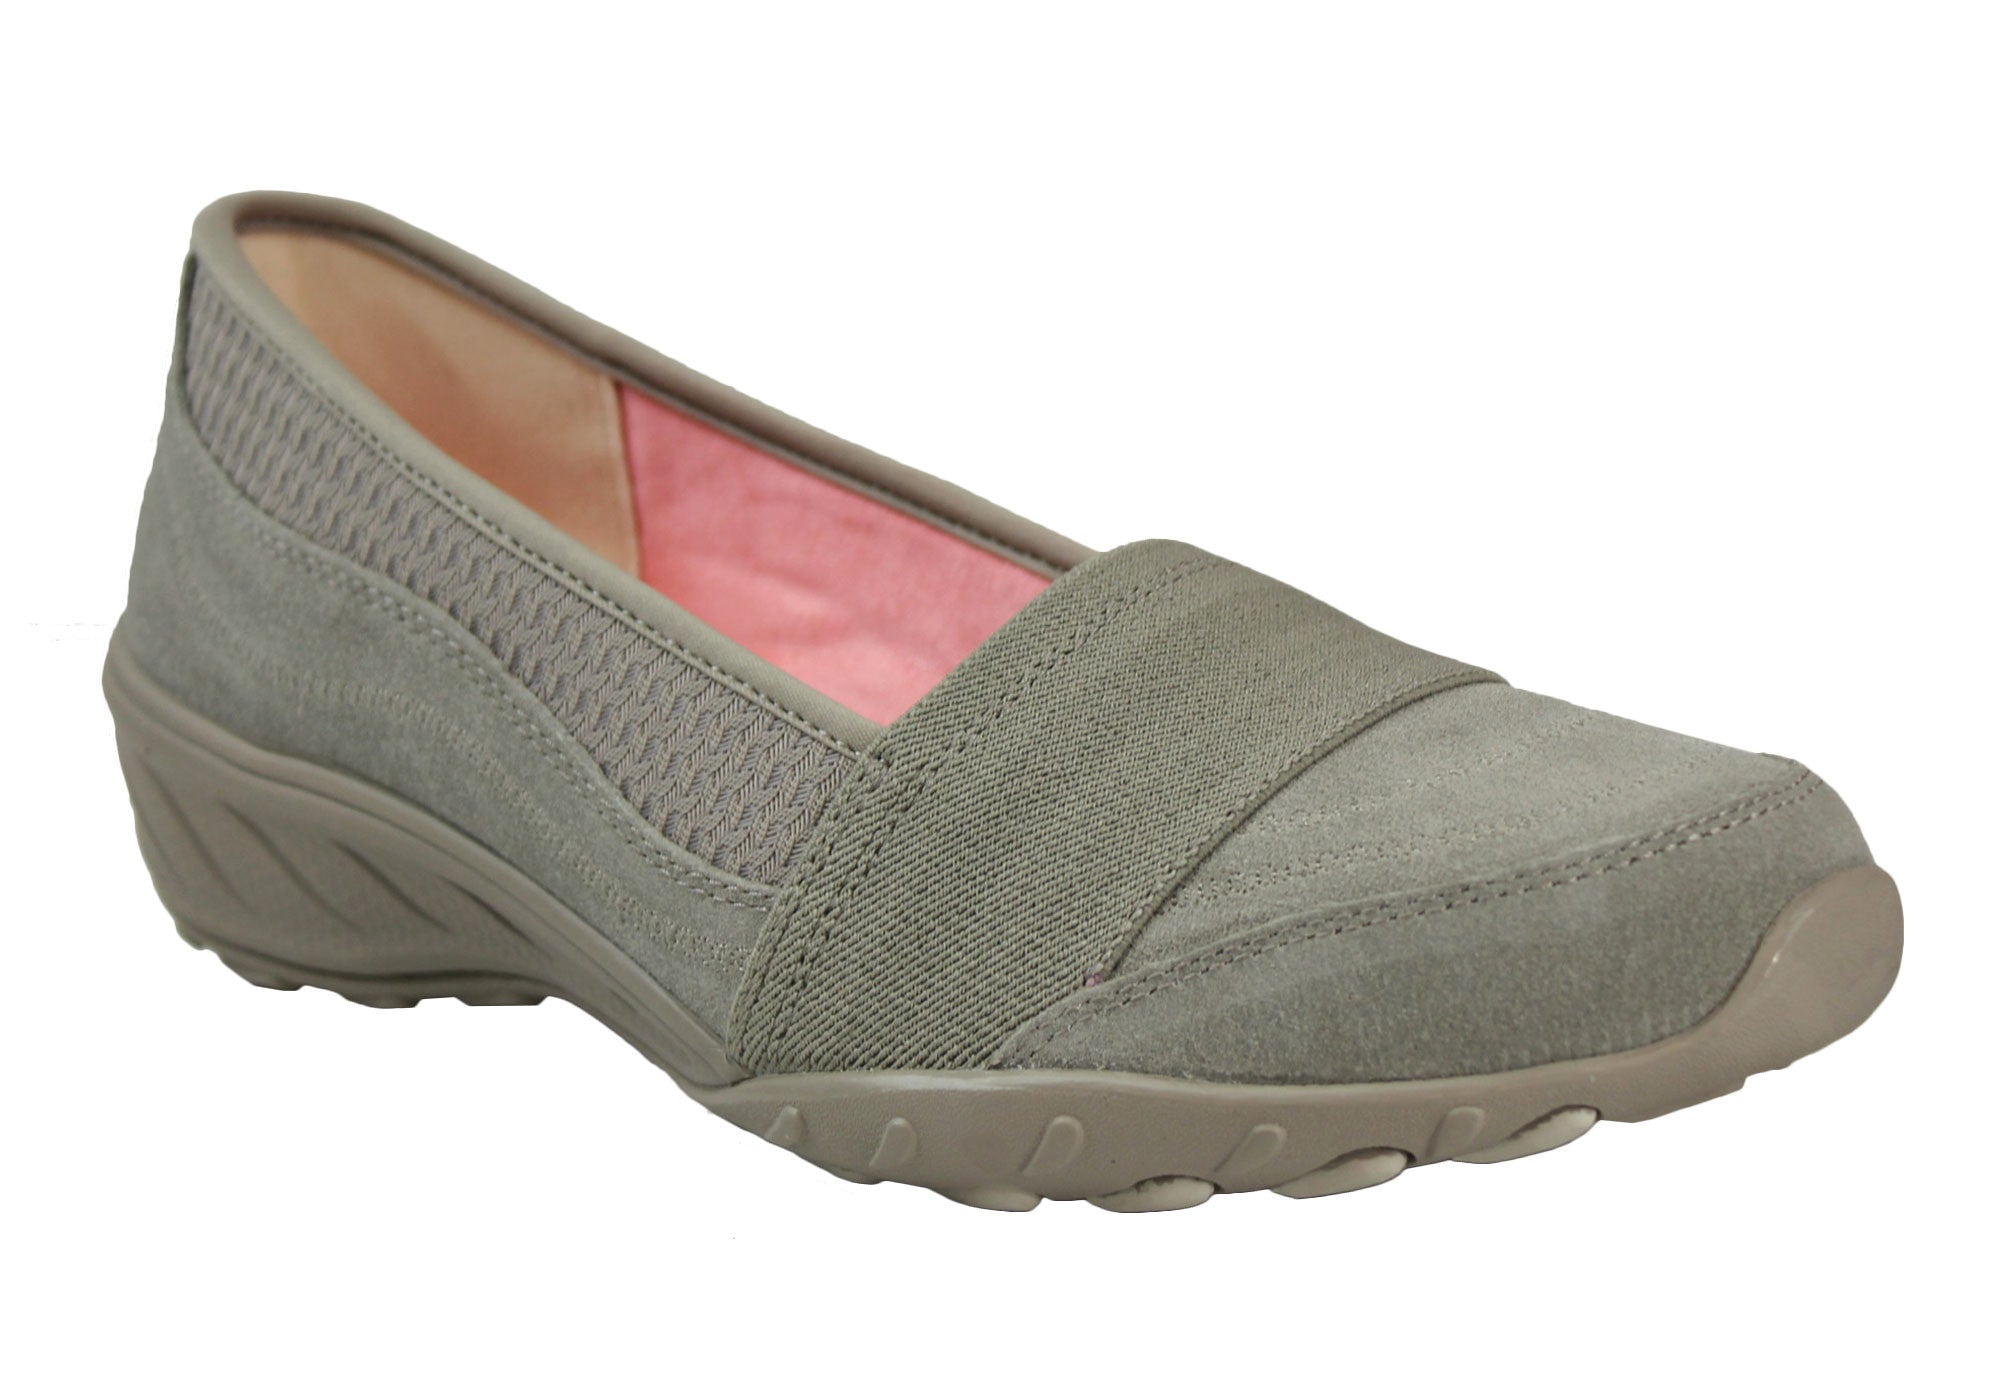 Skechers Savvy Womens Relaxed Fit Memory Foam Casual Shoes